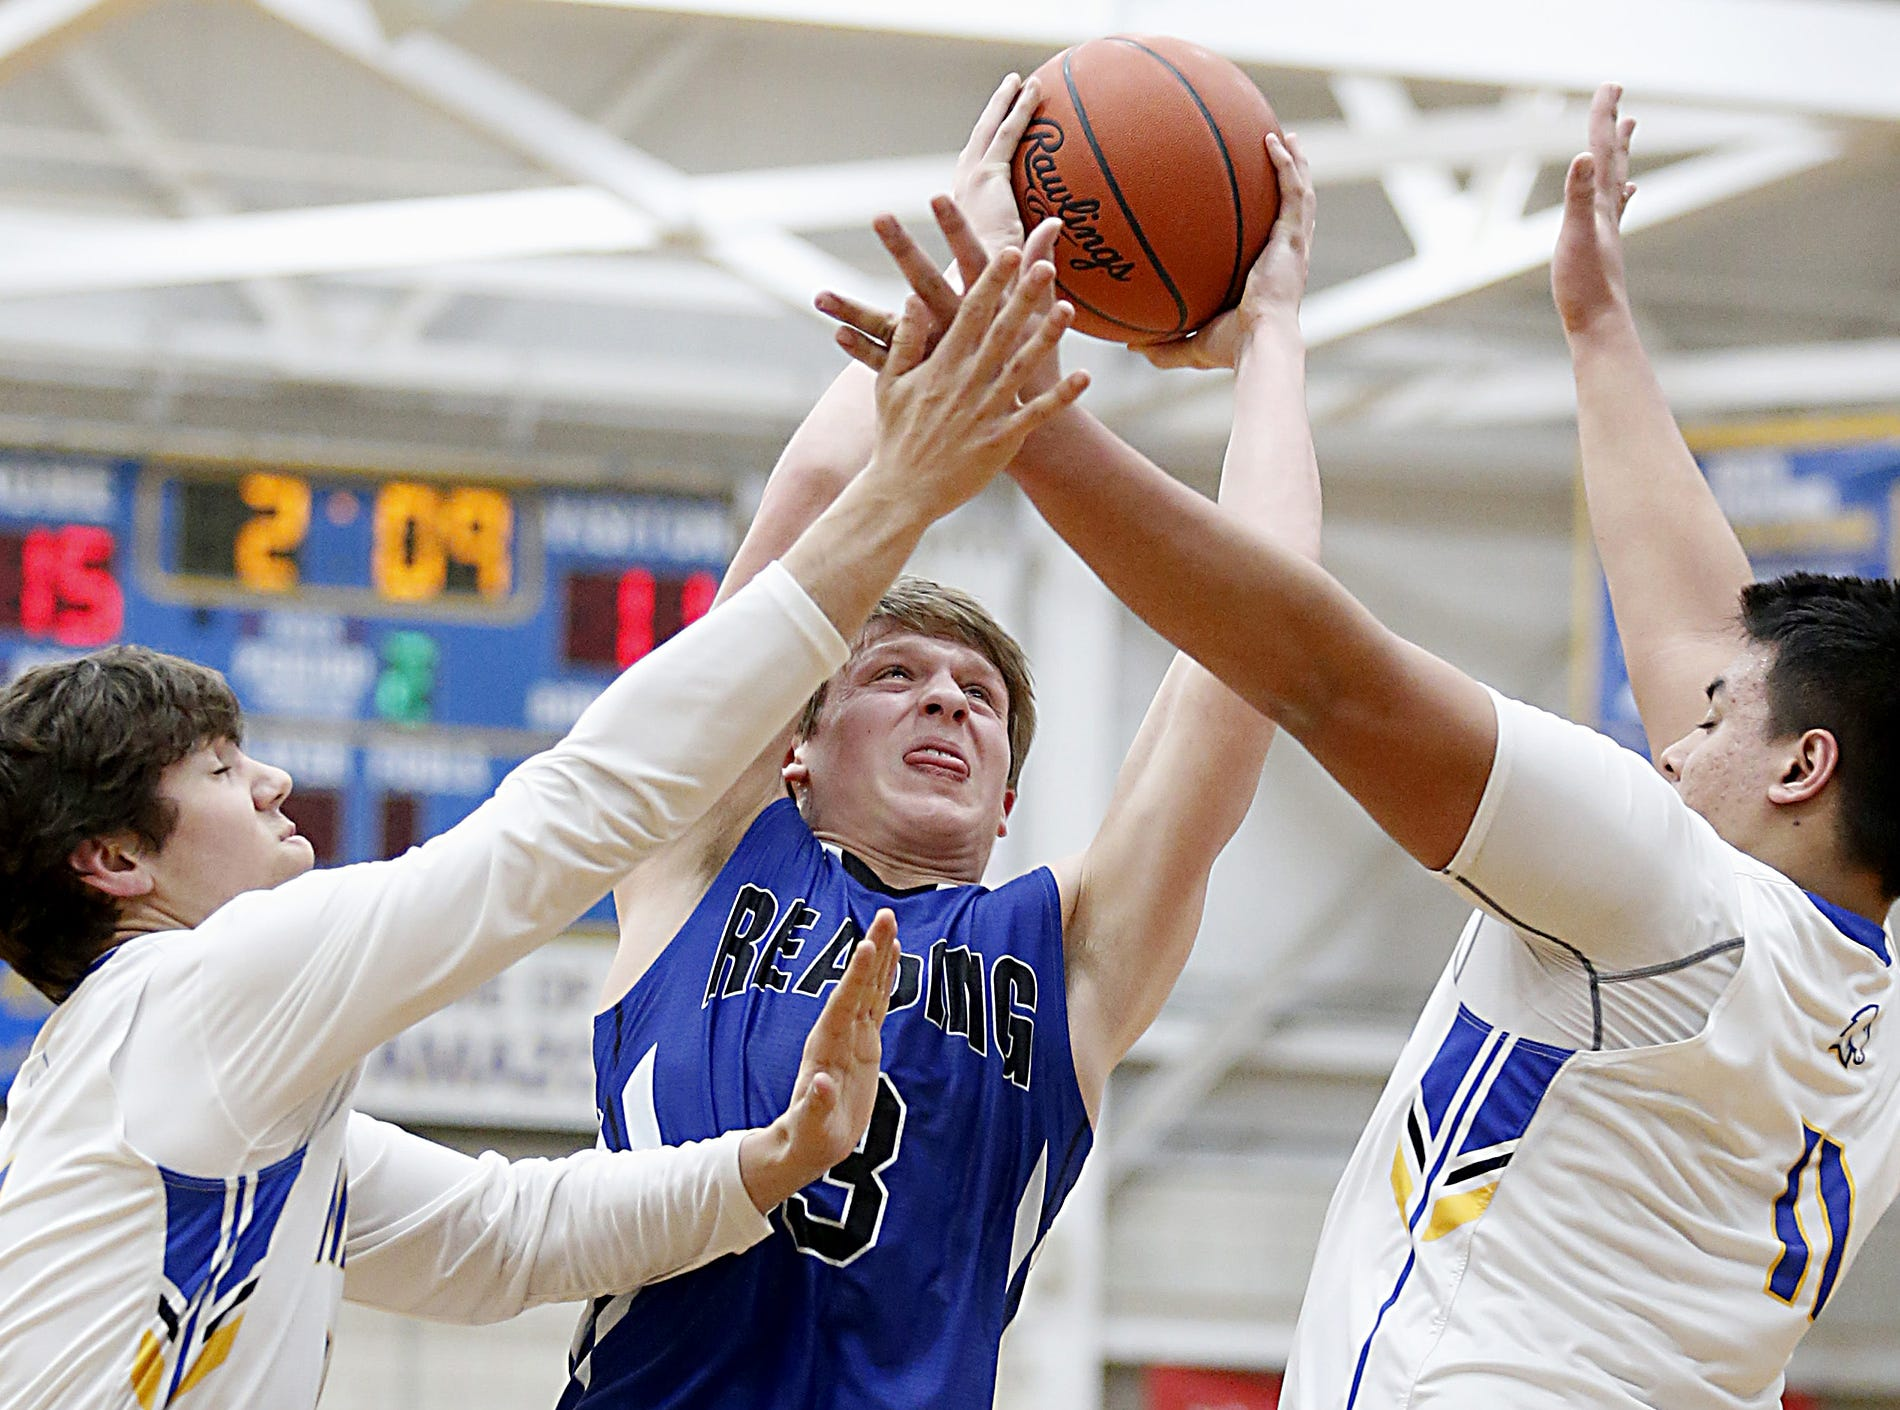 Reading forward Gabe Van Skaik fails to score while covered by Madeira forward Gray Palmer and center Eric Hoeffel during their game at Madeira Tuesday, Jan. 29, 2019.